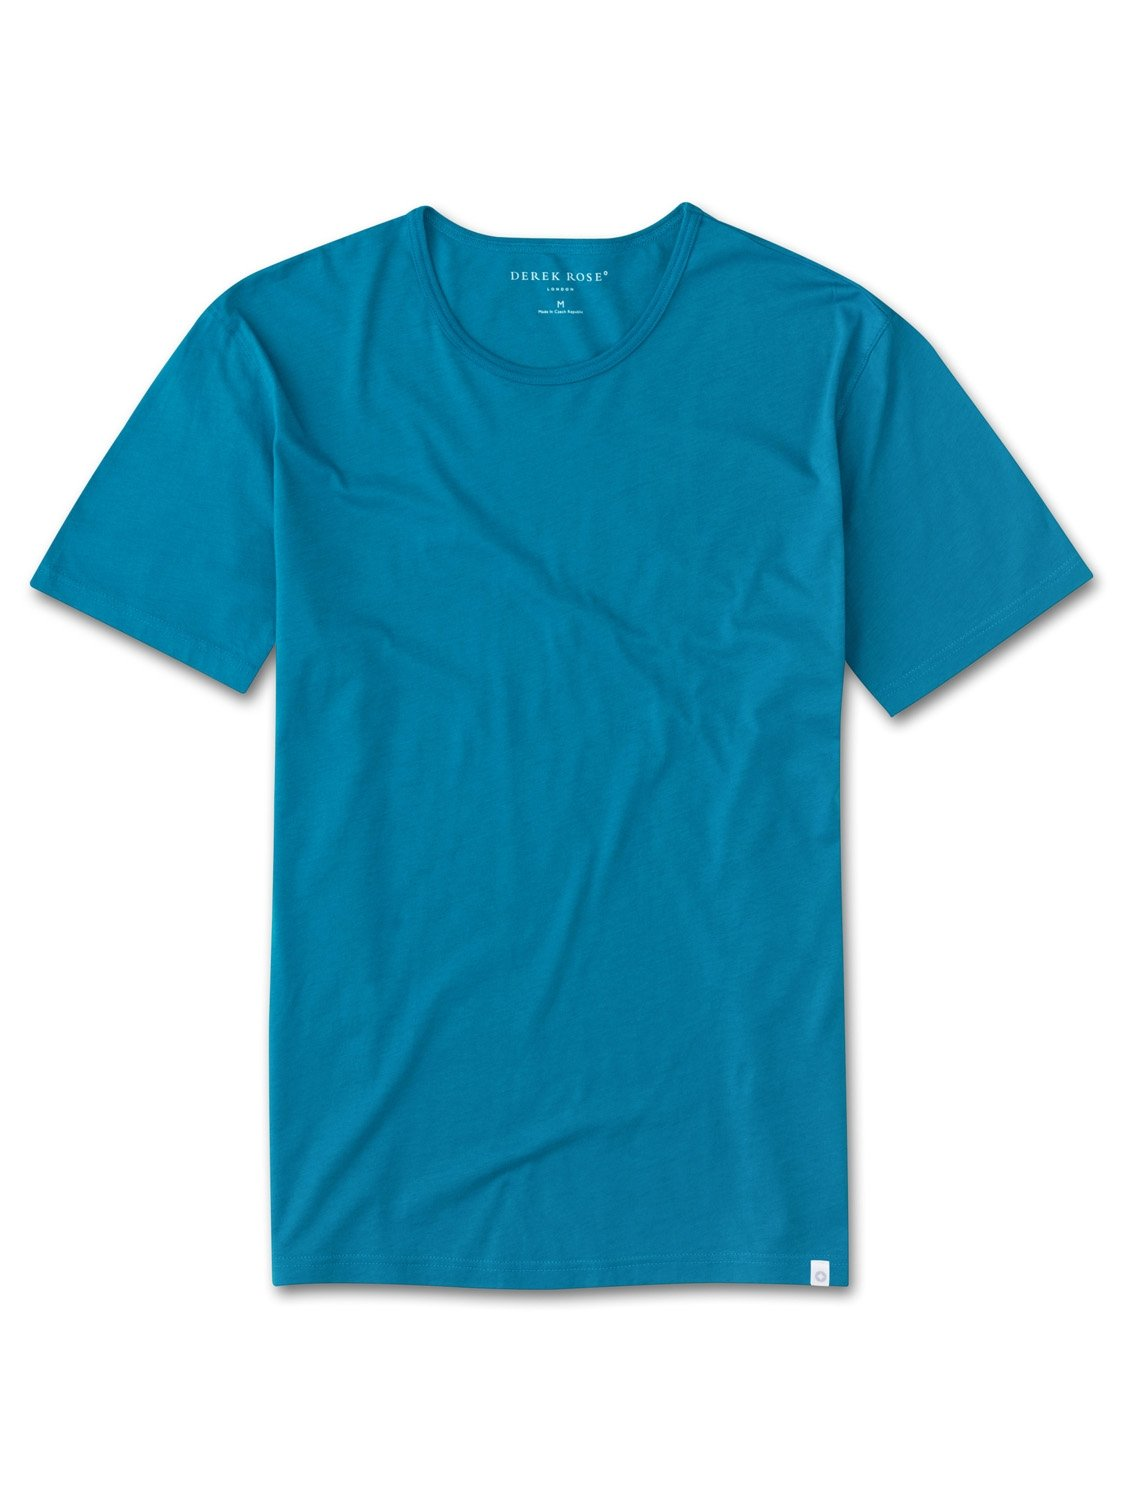 Derek Rose Men's Short Sleeve T-Shirt — Riley 2 Pima Cotton Teal